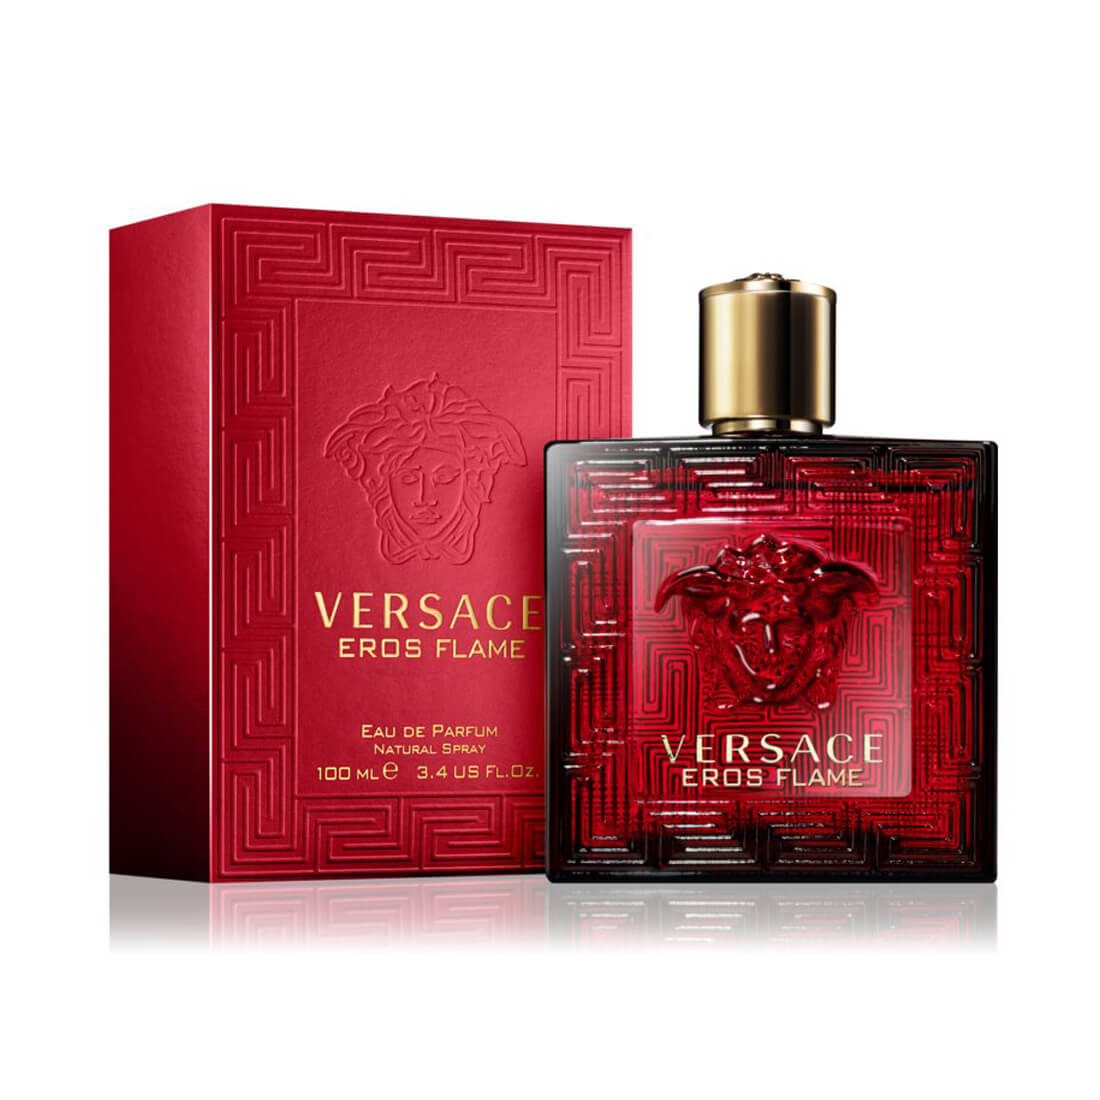 Versace Eros Flame Eau De Perfume For Men 100ml